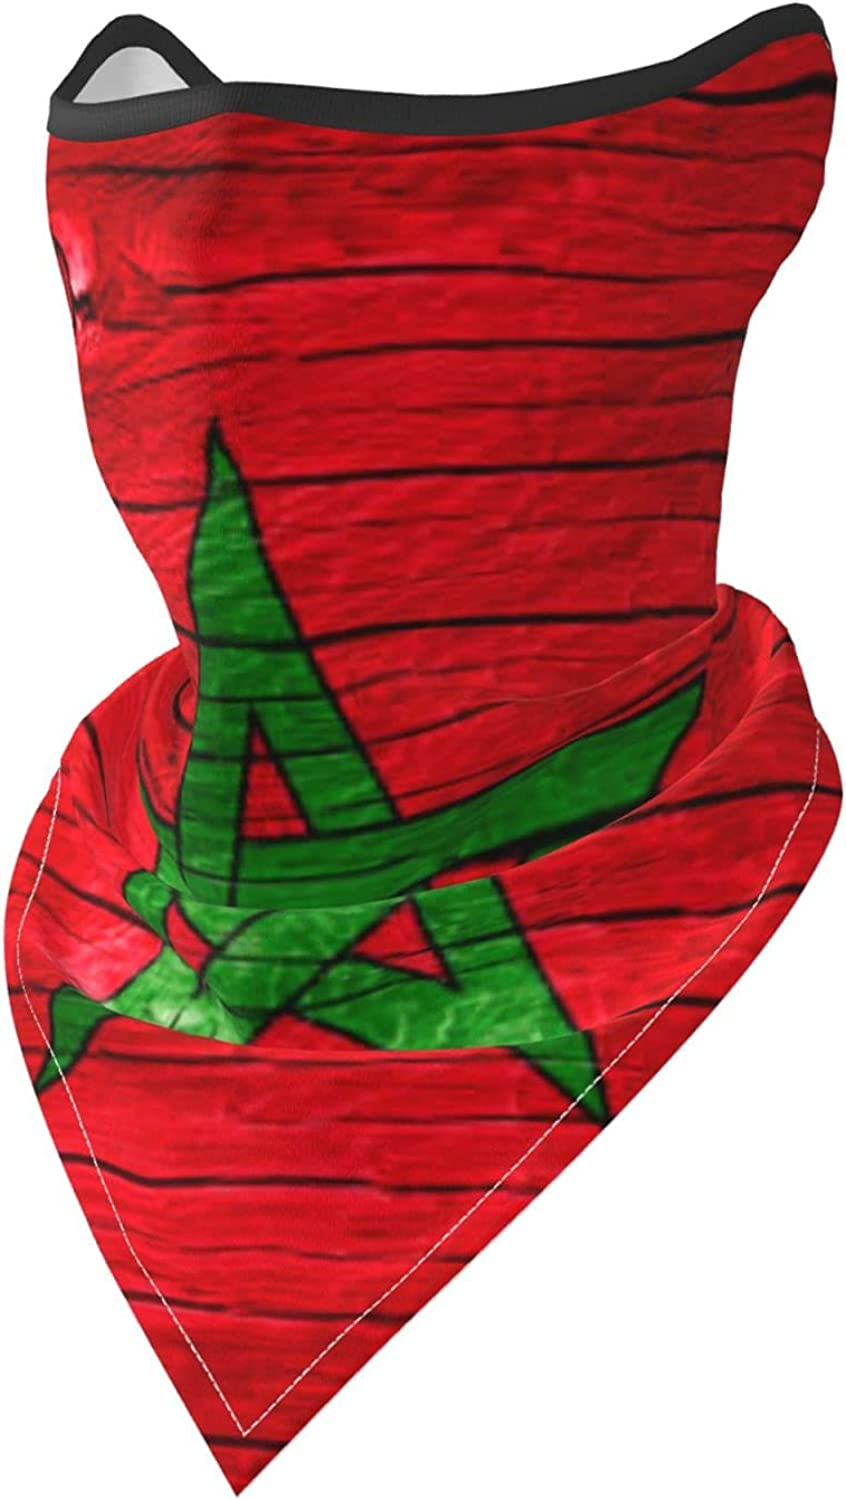 Moroccan Flag Wooden Texture Breathable Bandana Face Mask Neck Gaiter Windproof Sports Mask Scarf Headwear for Men Women Outdoor Hiking Cycling Running Motorcycling